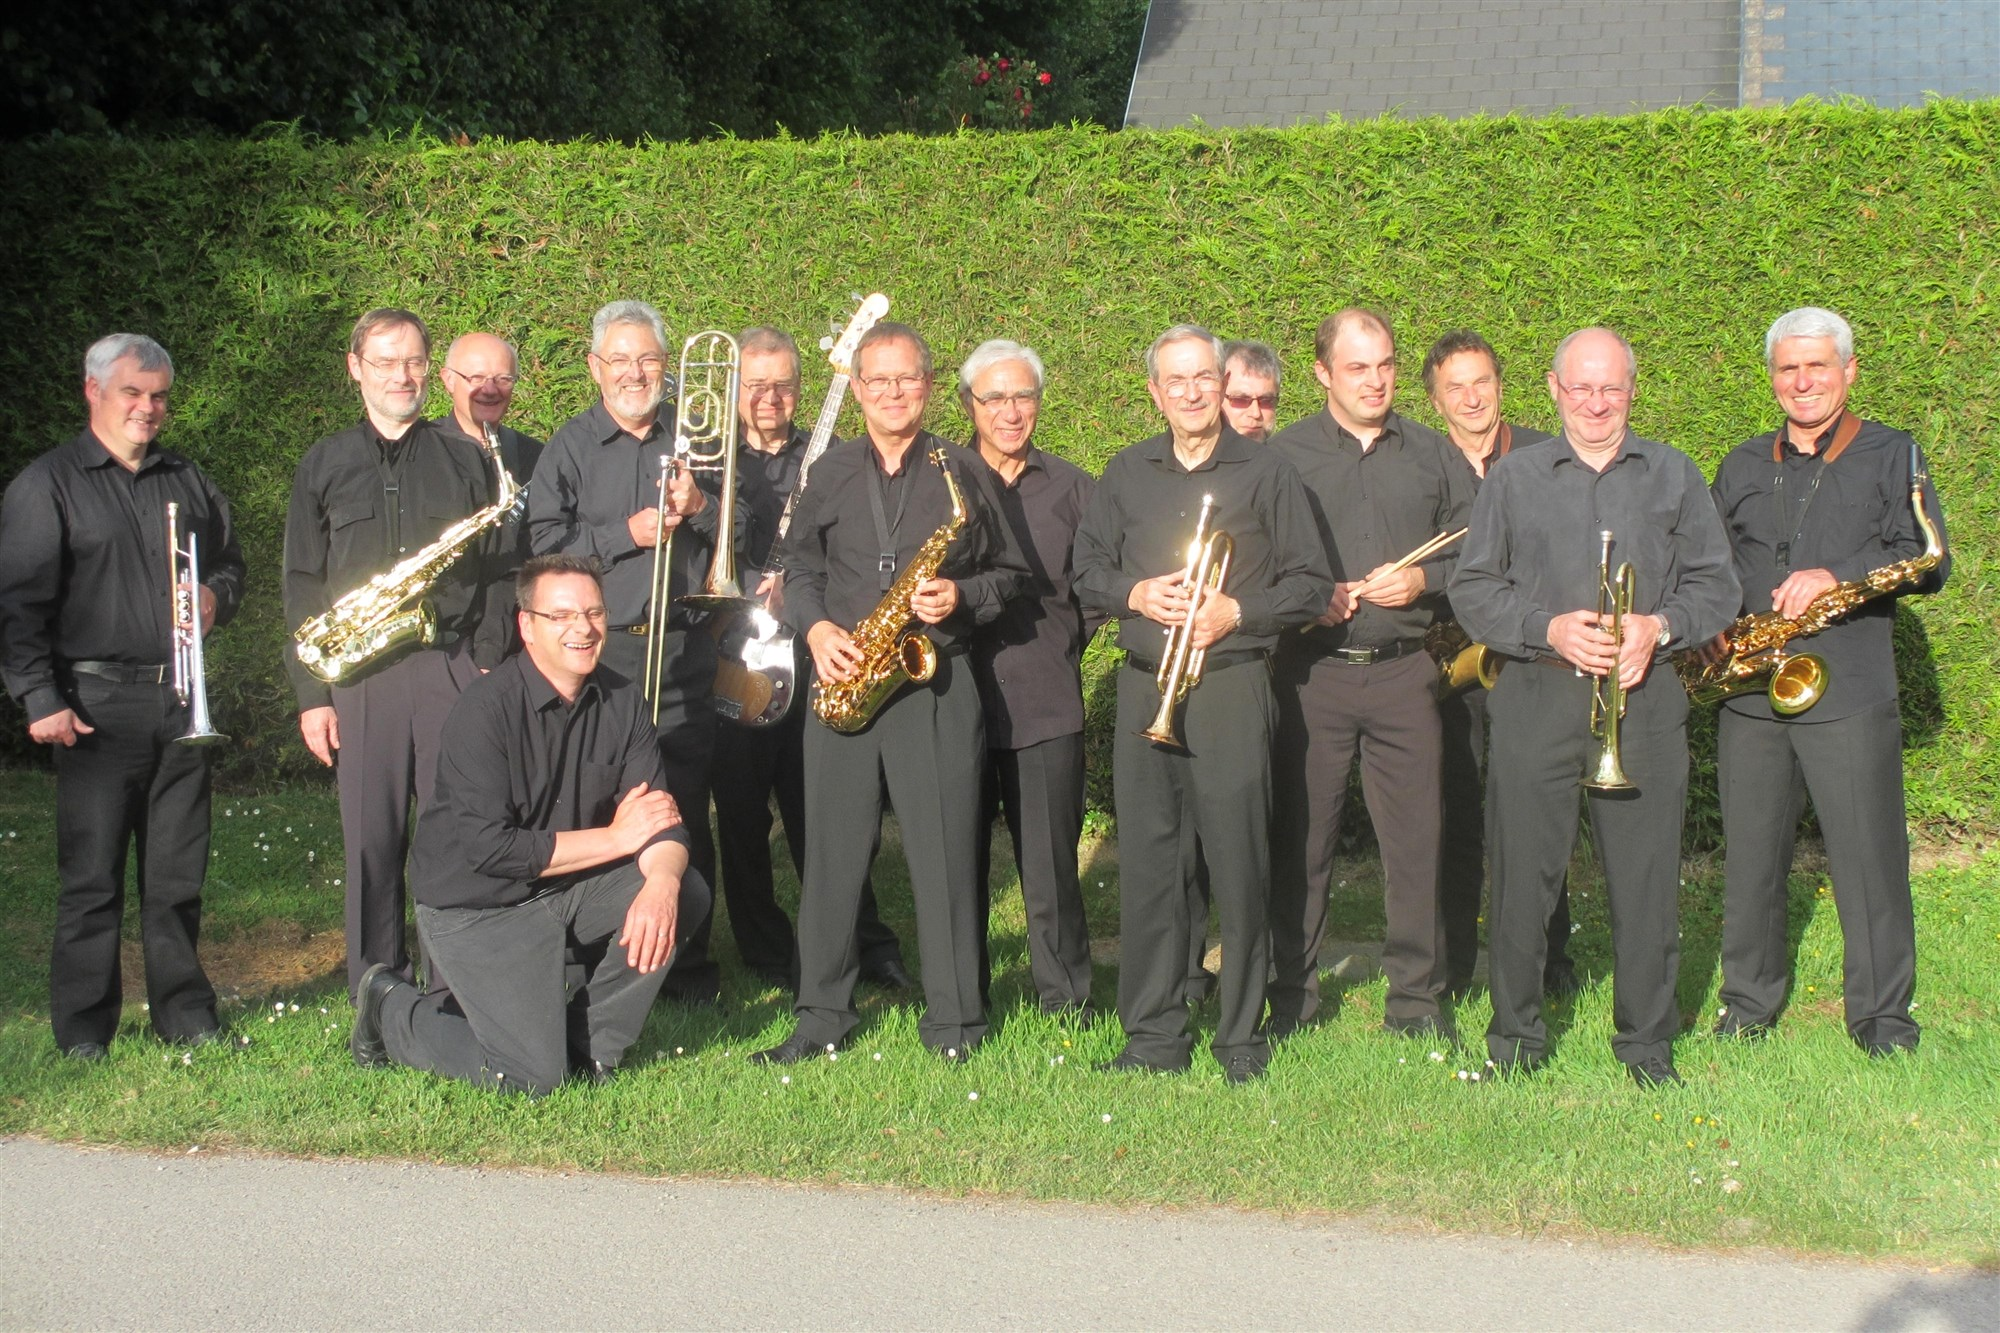 Concert du Middle Jazz Band Ouilly-le-Vicomte